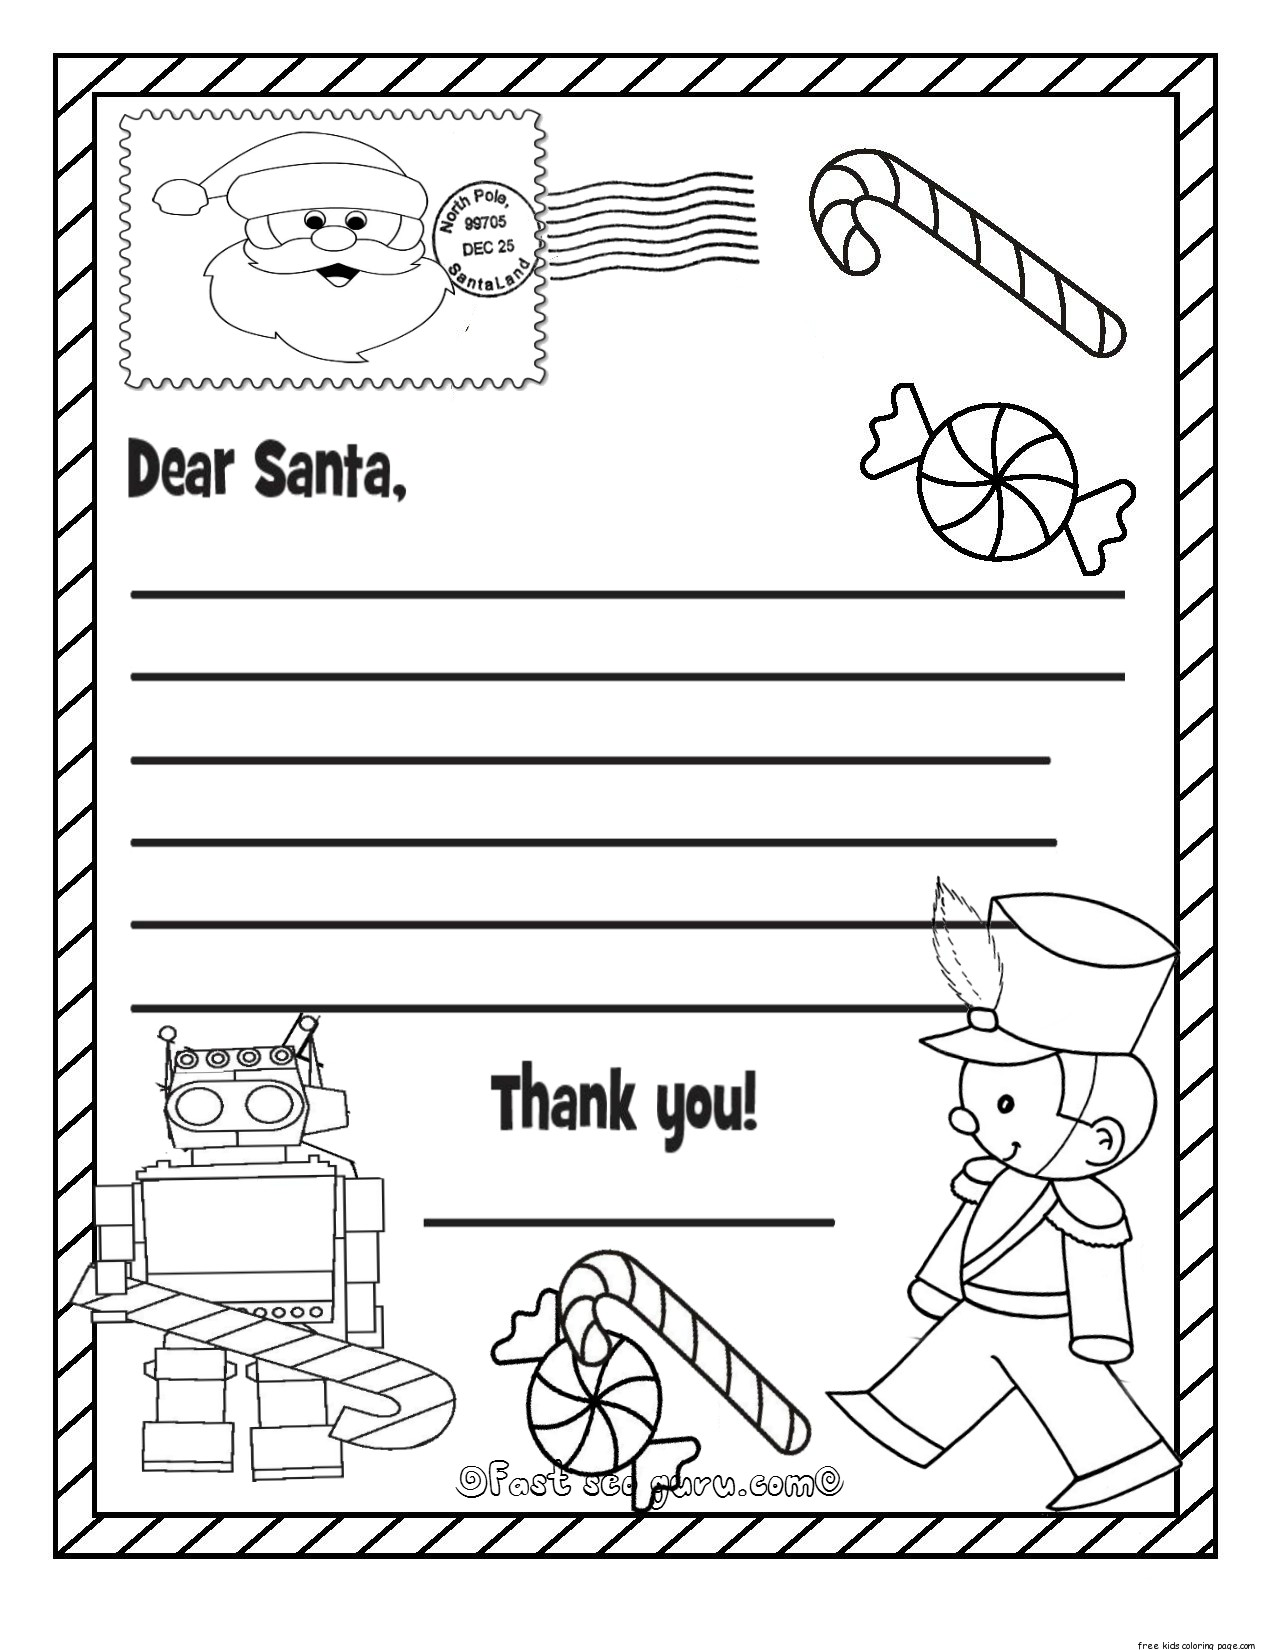 Free Christmas Coloring Pages Santa Claus With List 2022245